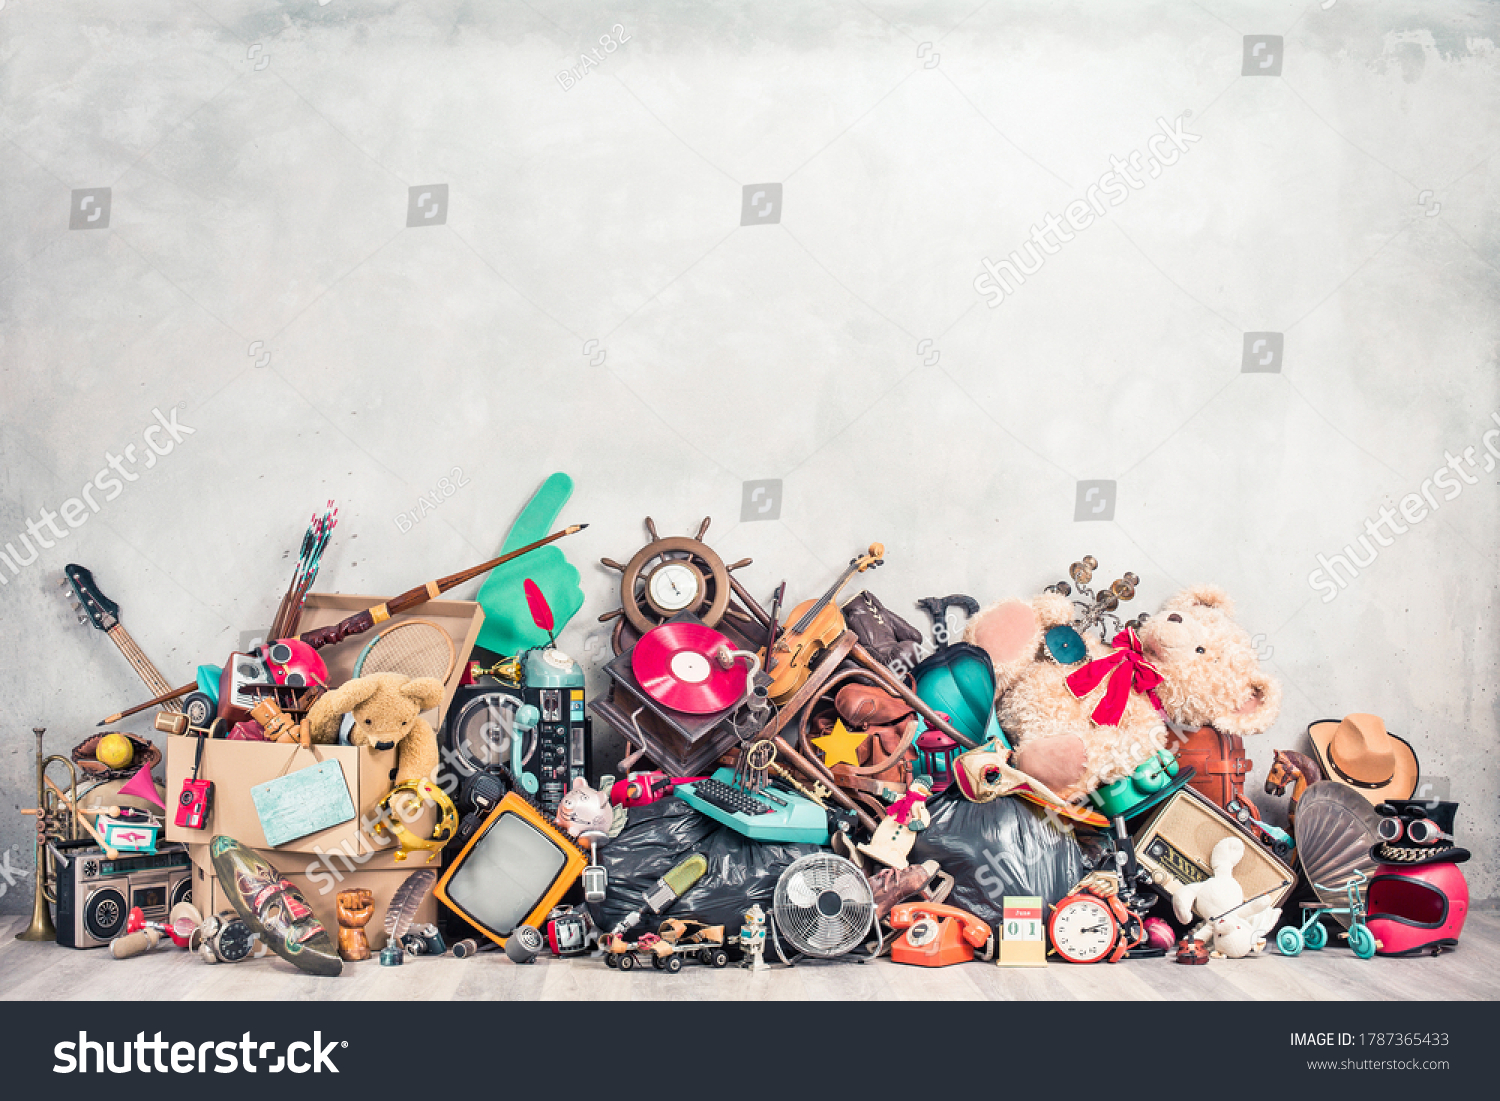 Old antiques and retro collectibles memorabilia dumped in a huge pile. Garage sale, attic room storage conceptual still life or disposal and recycling of outdated objects. Vintage style filtered photo #1787365433